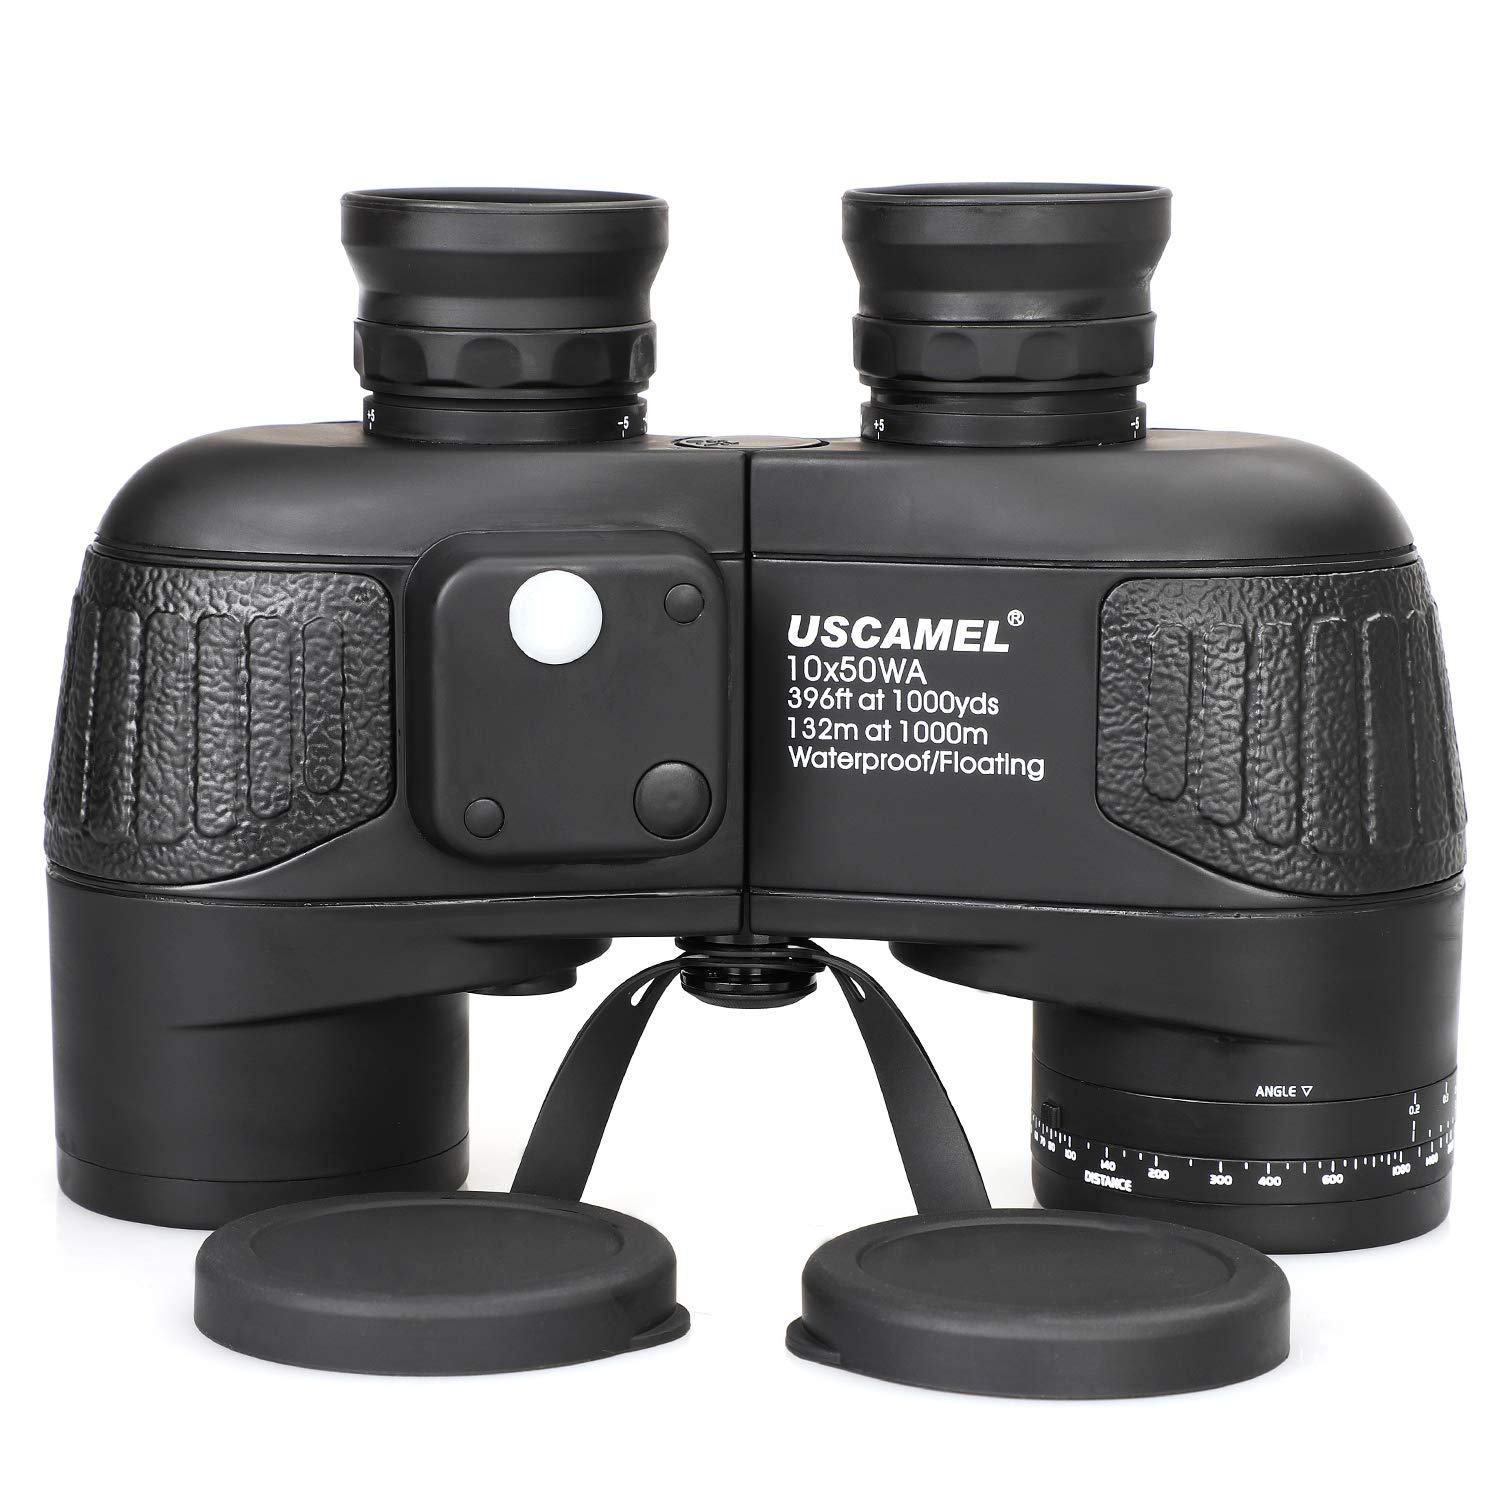 USCAMEL 10x50 Marine Binoculars for Adults, Military Binoculars Waterproof with Rangefinder Compass BAK4 Prism FMC Lens Fogproof for Navigation Birdwatching Hunting ... (10x50) by USCAMEL